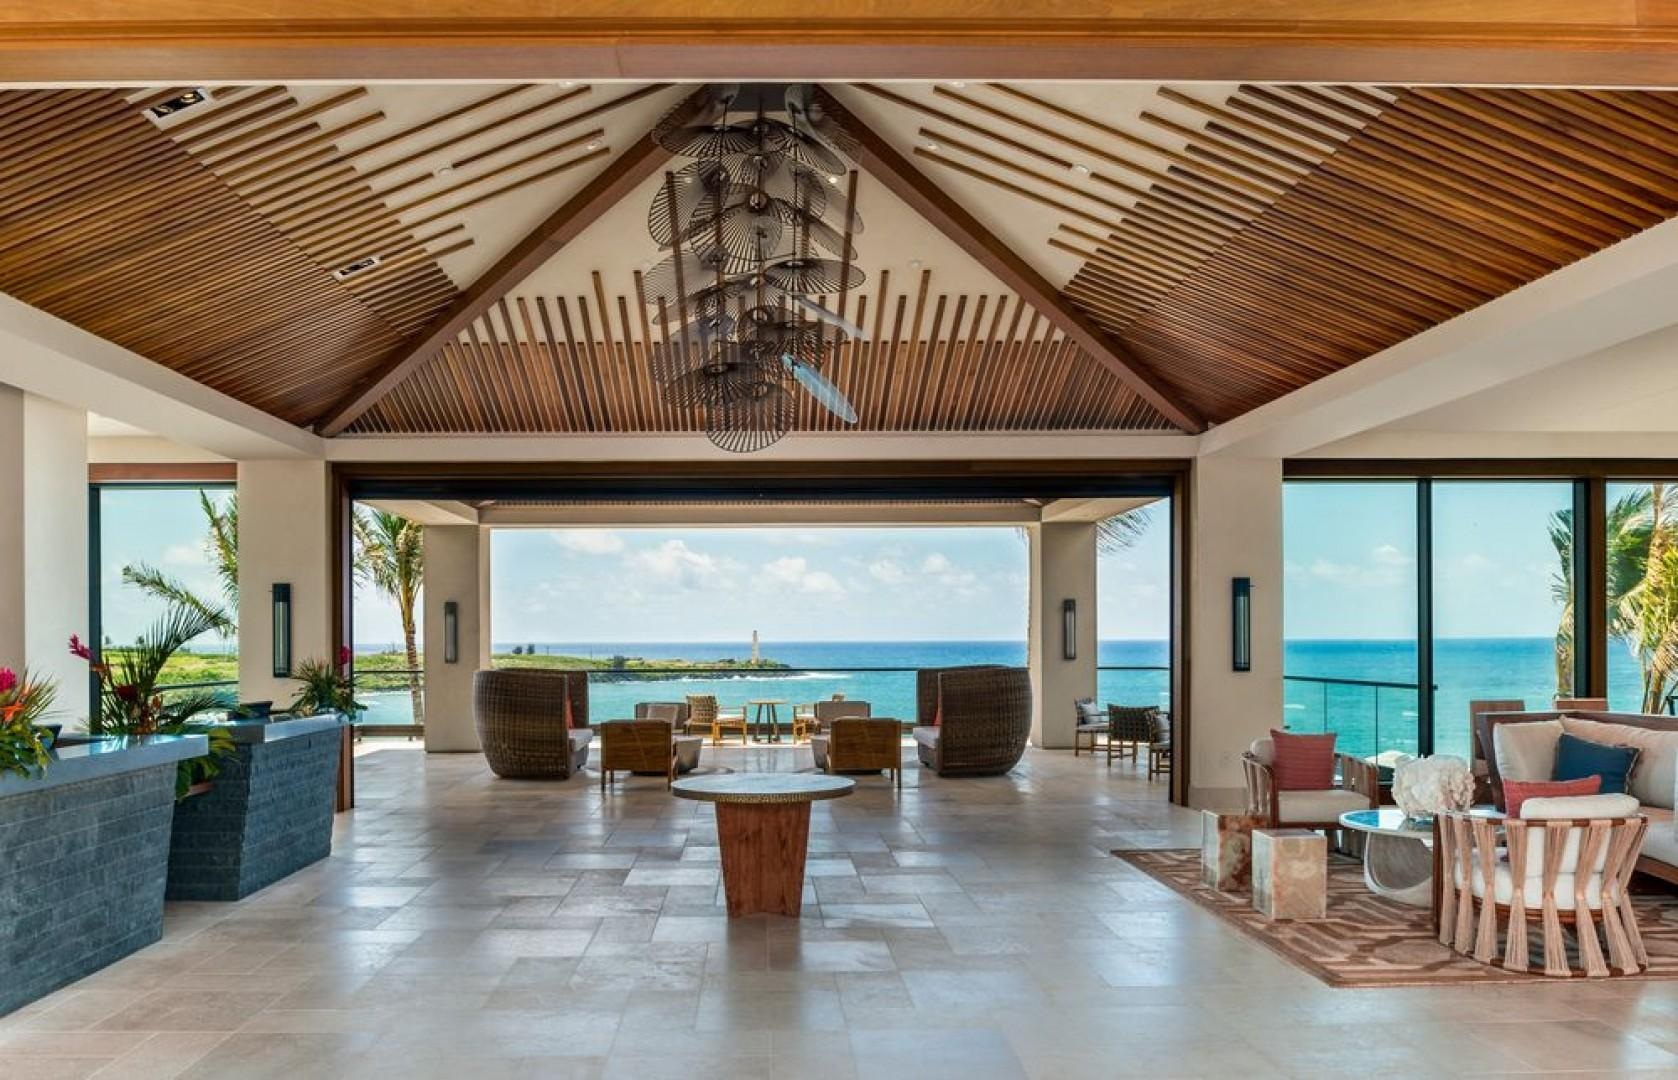 A grand, ocean-view lobby greets you upon arrival.